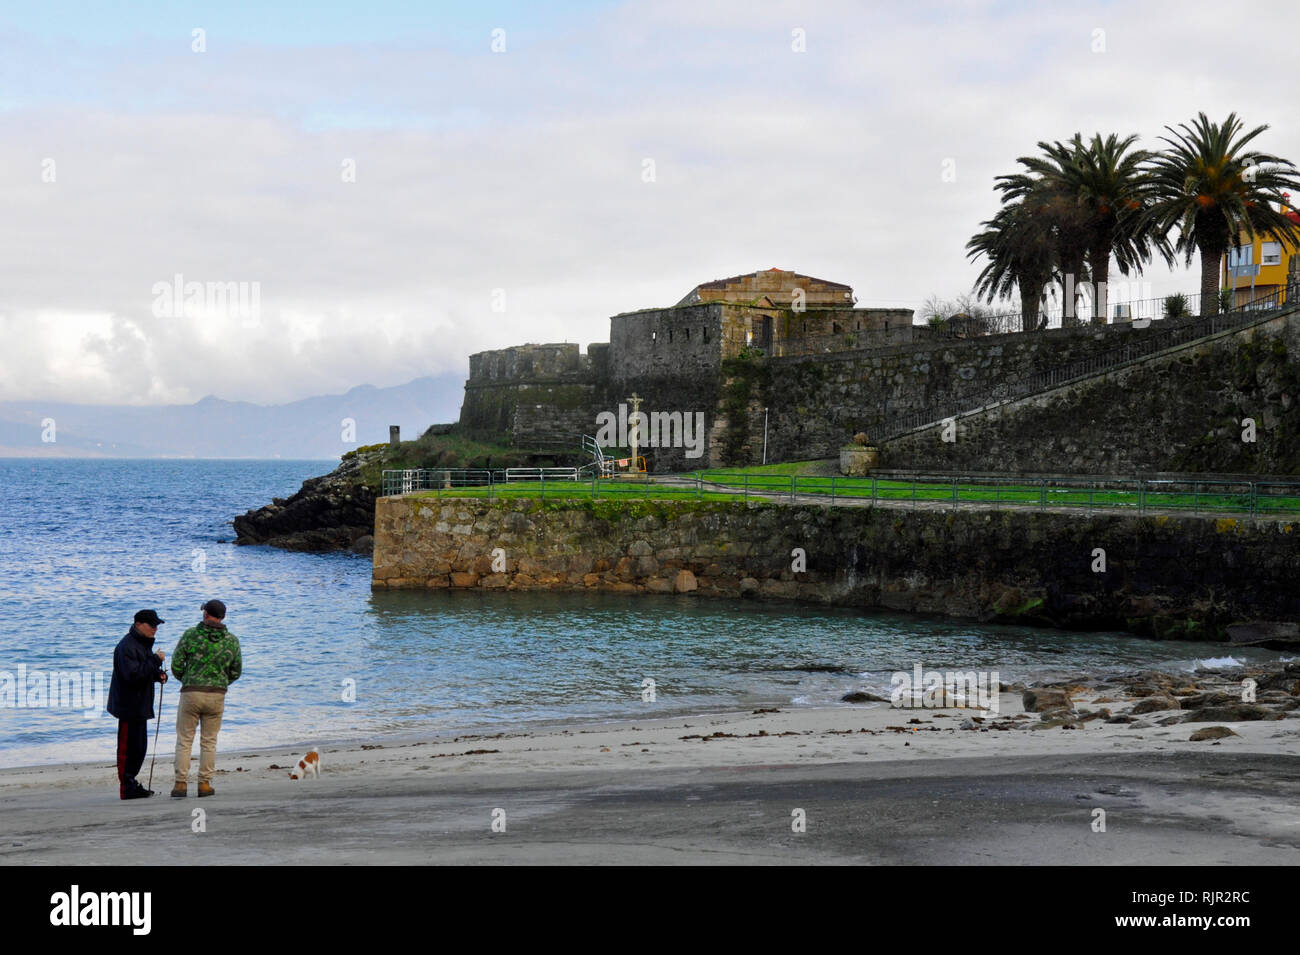 Two men chatting with Castle of San Carlos in the background. The castle is the final destination on the St.James Way. - Stock Image